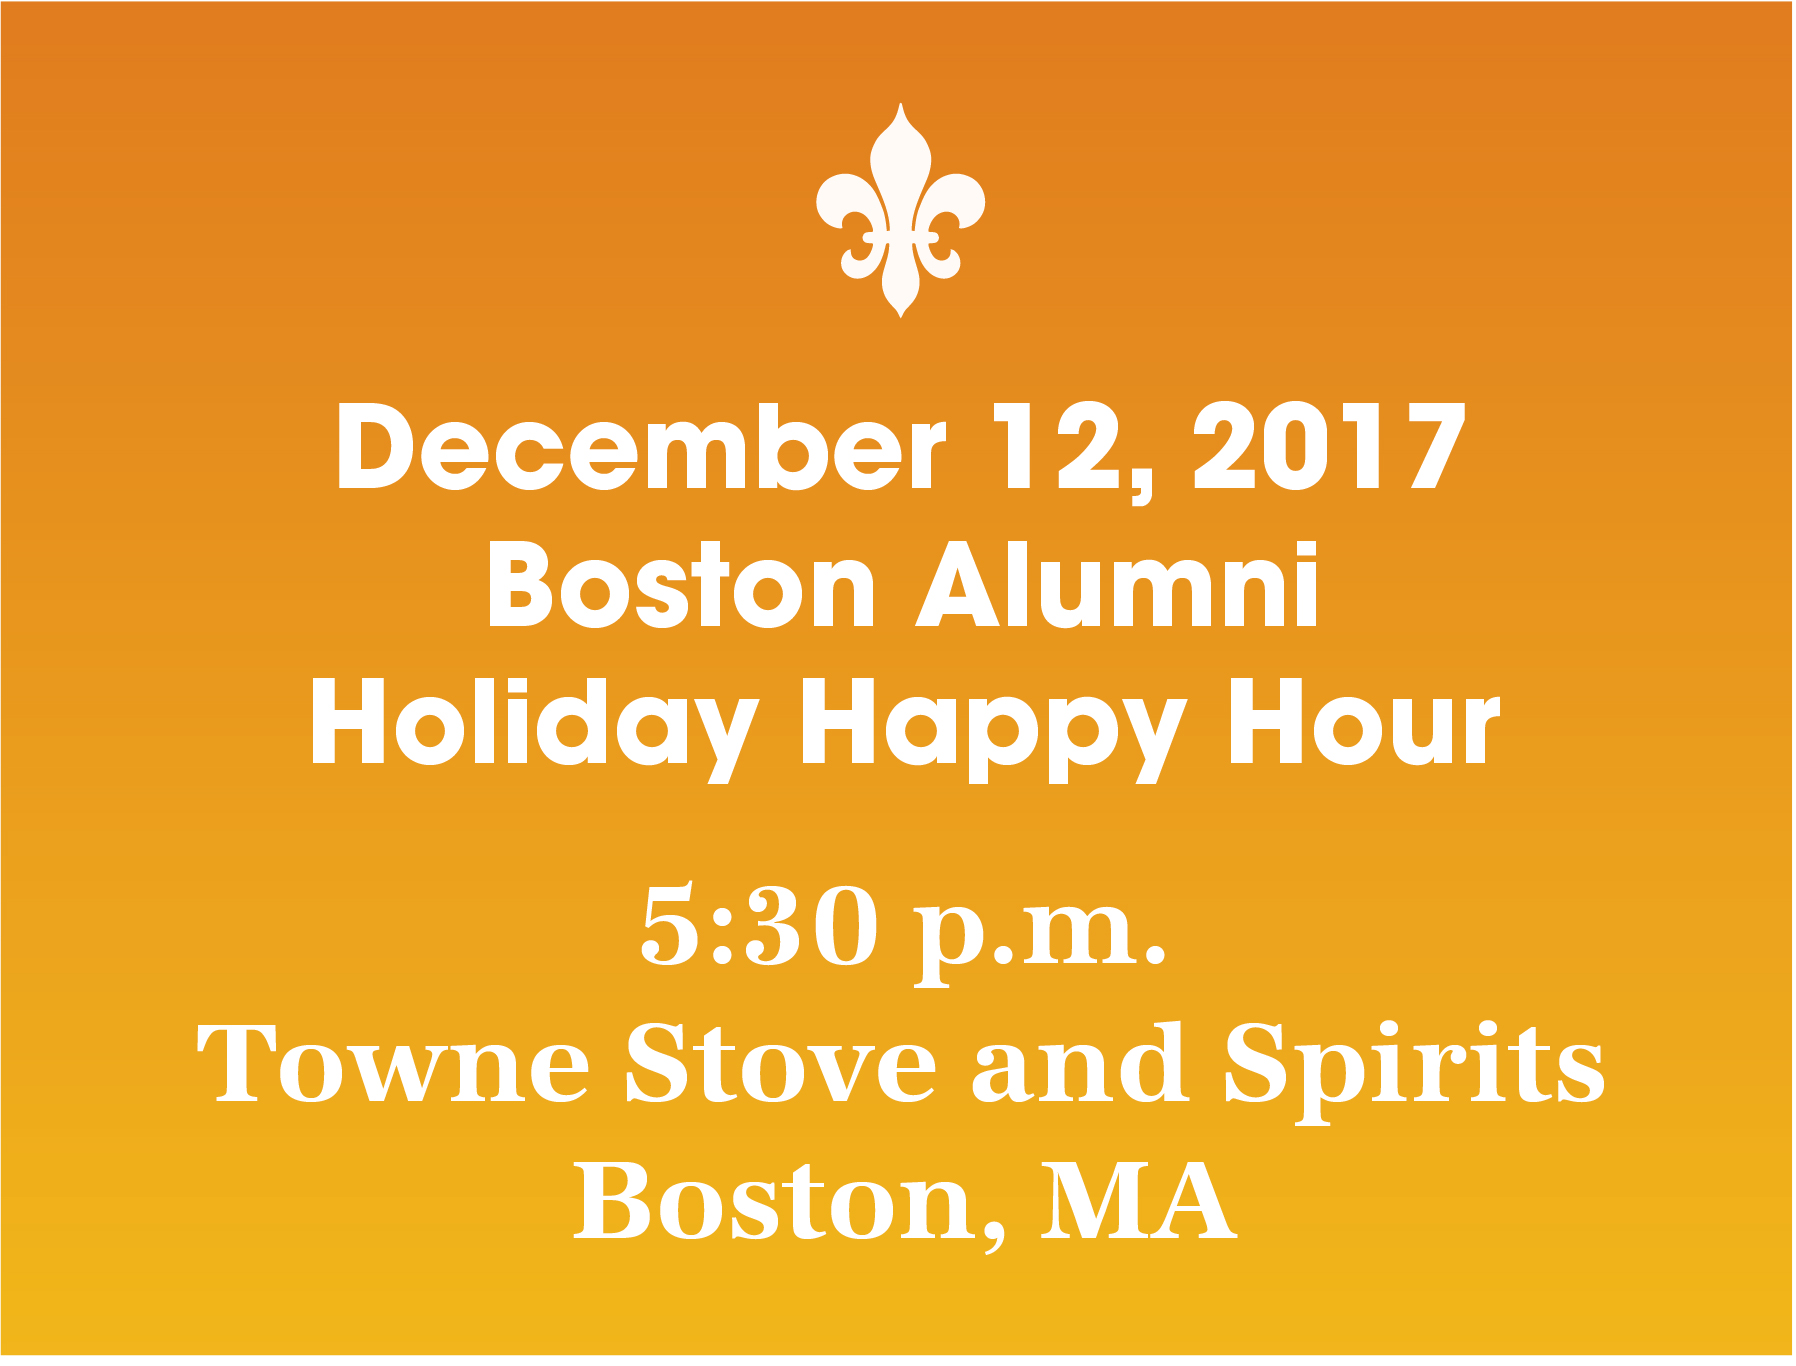 Boston Alumni Holiday Happy Hour